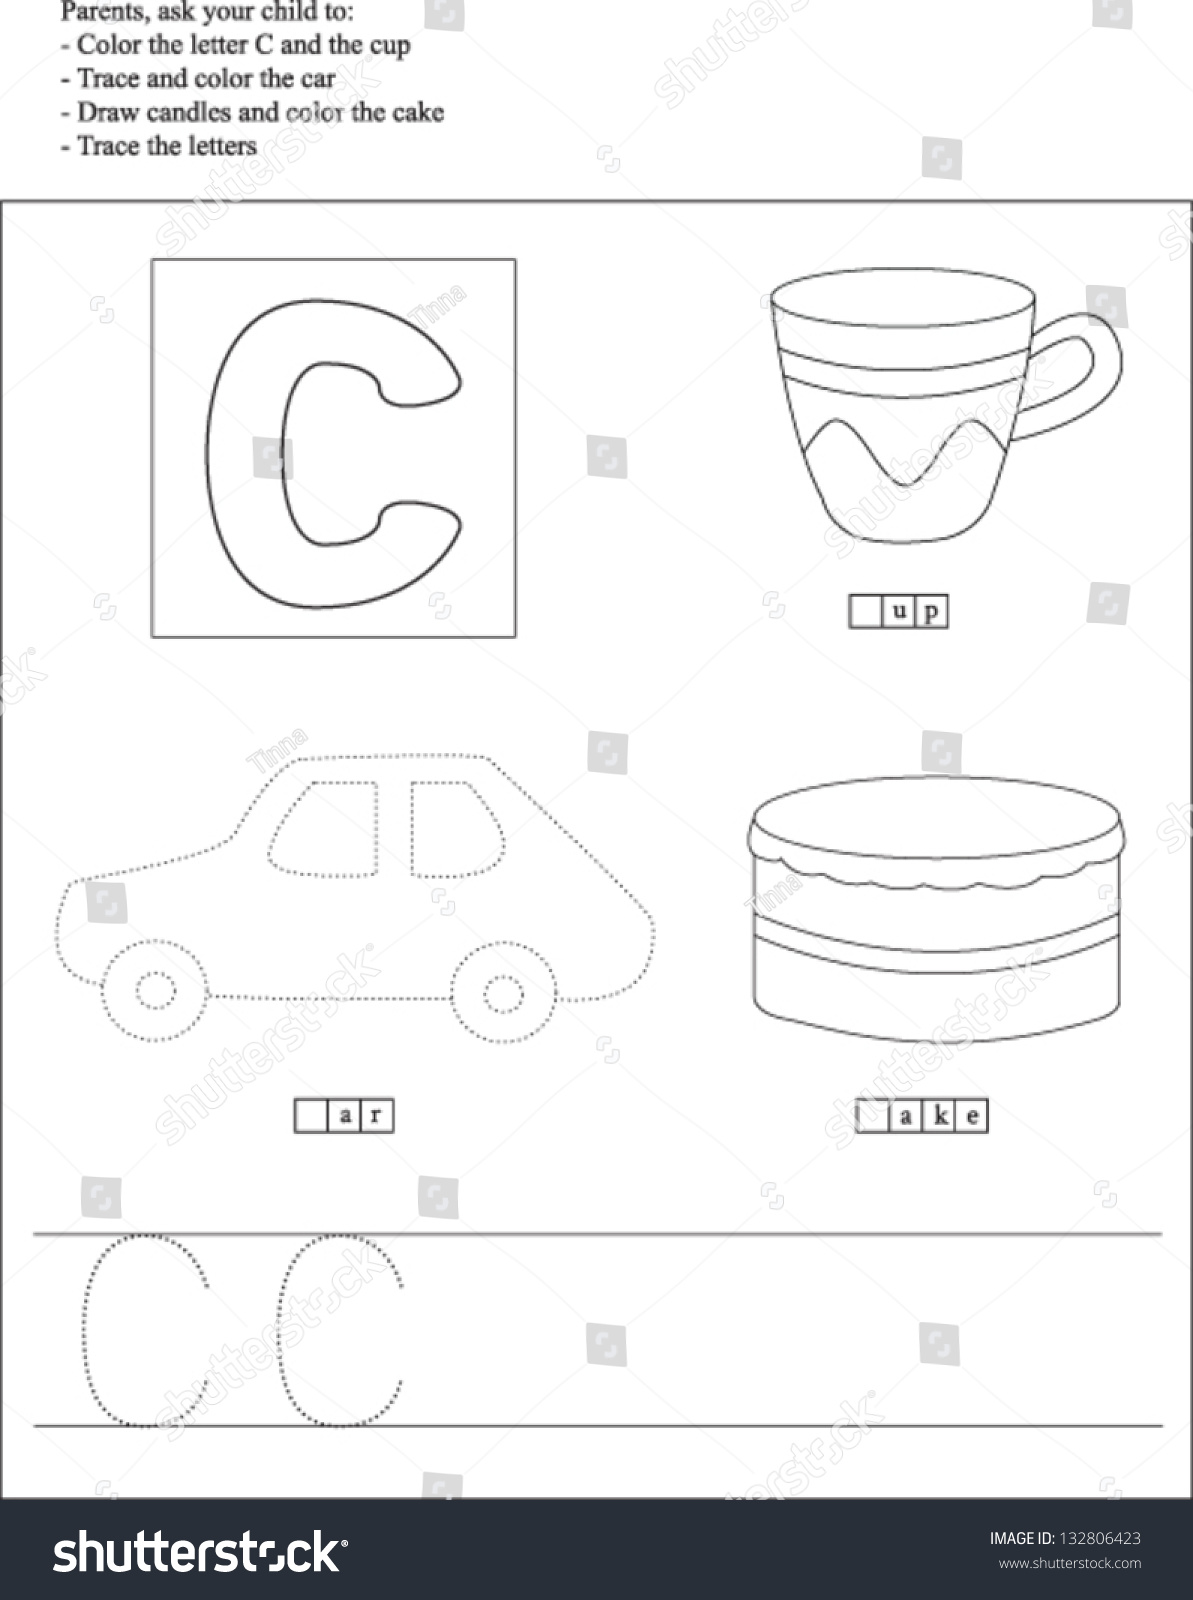 Trace Color Letter C Worksheet Preschoolers Stock Vector